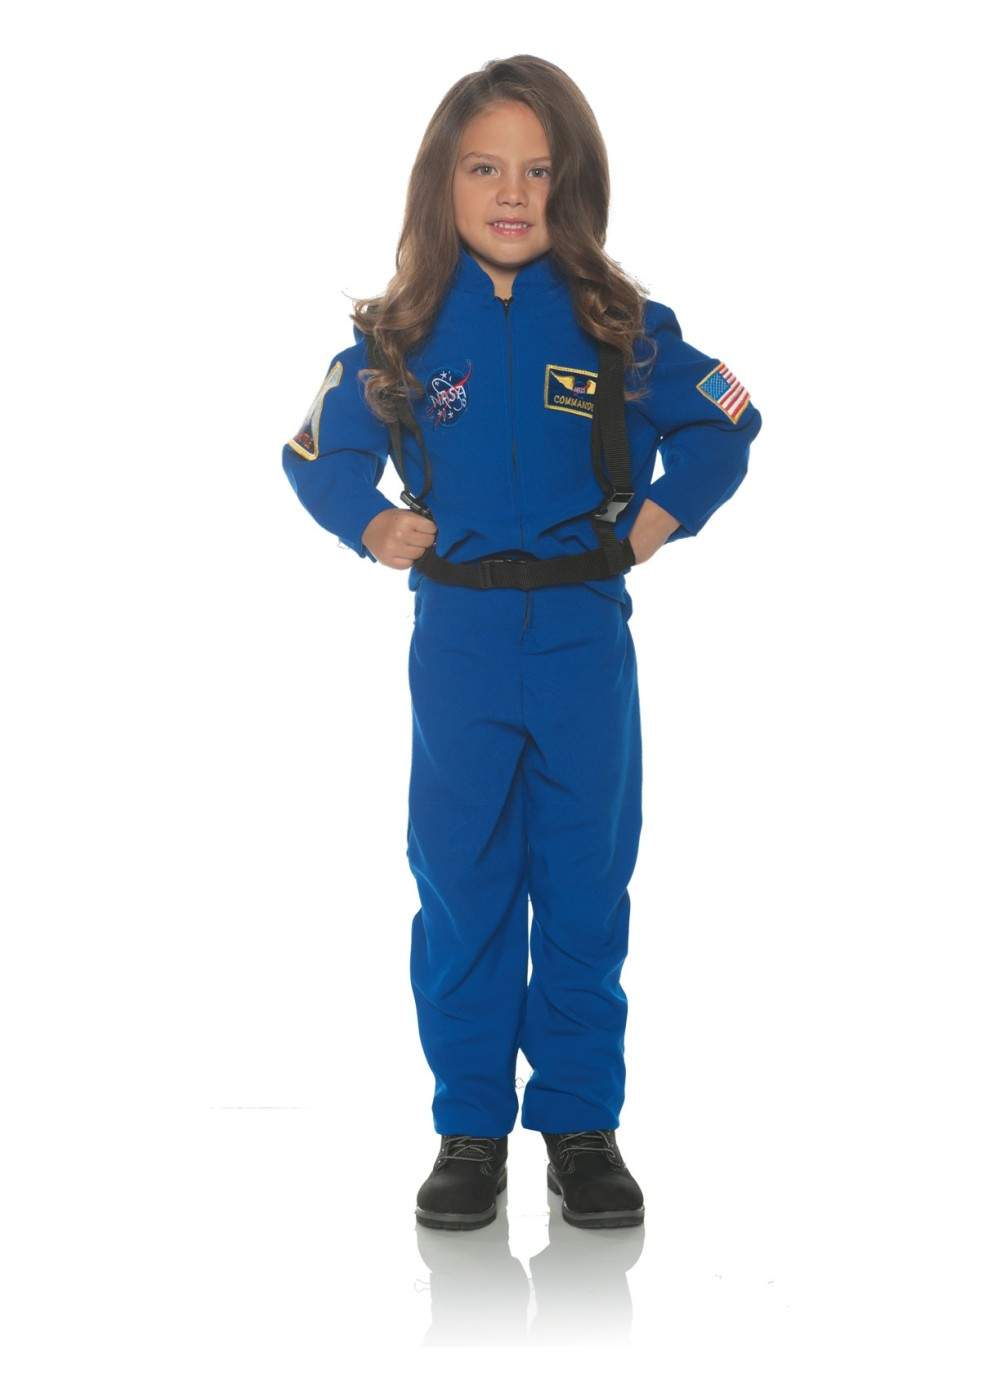 Kids Astronaut Flight Suit Boy Costume